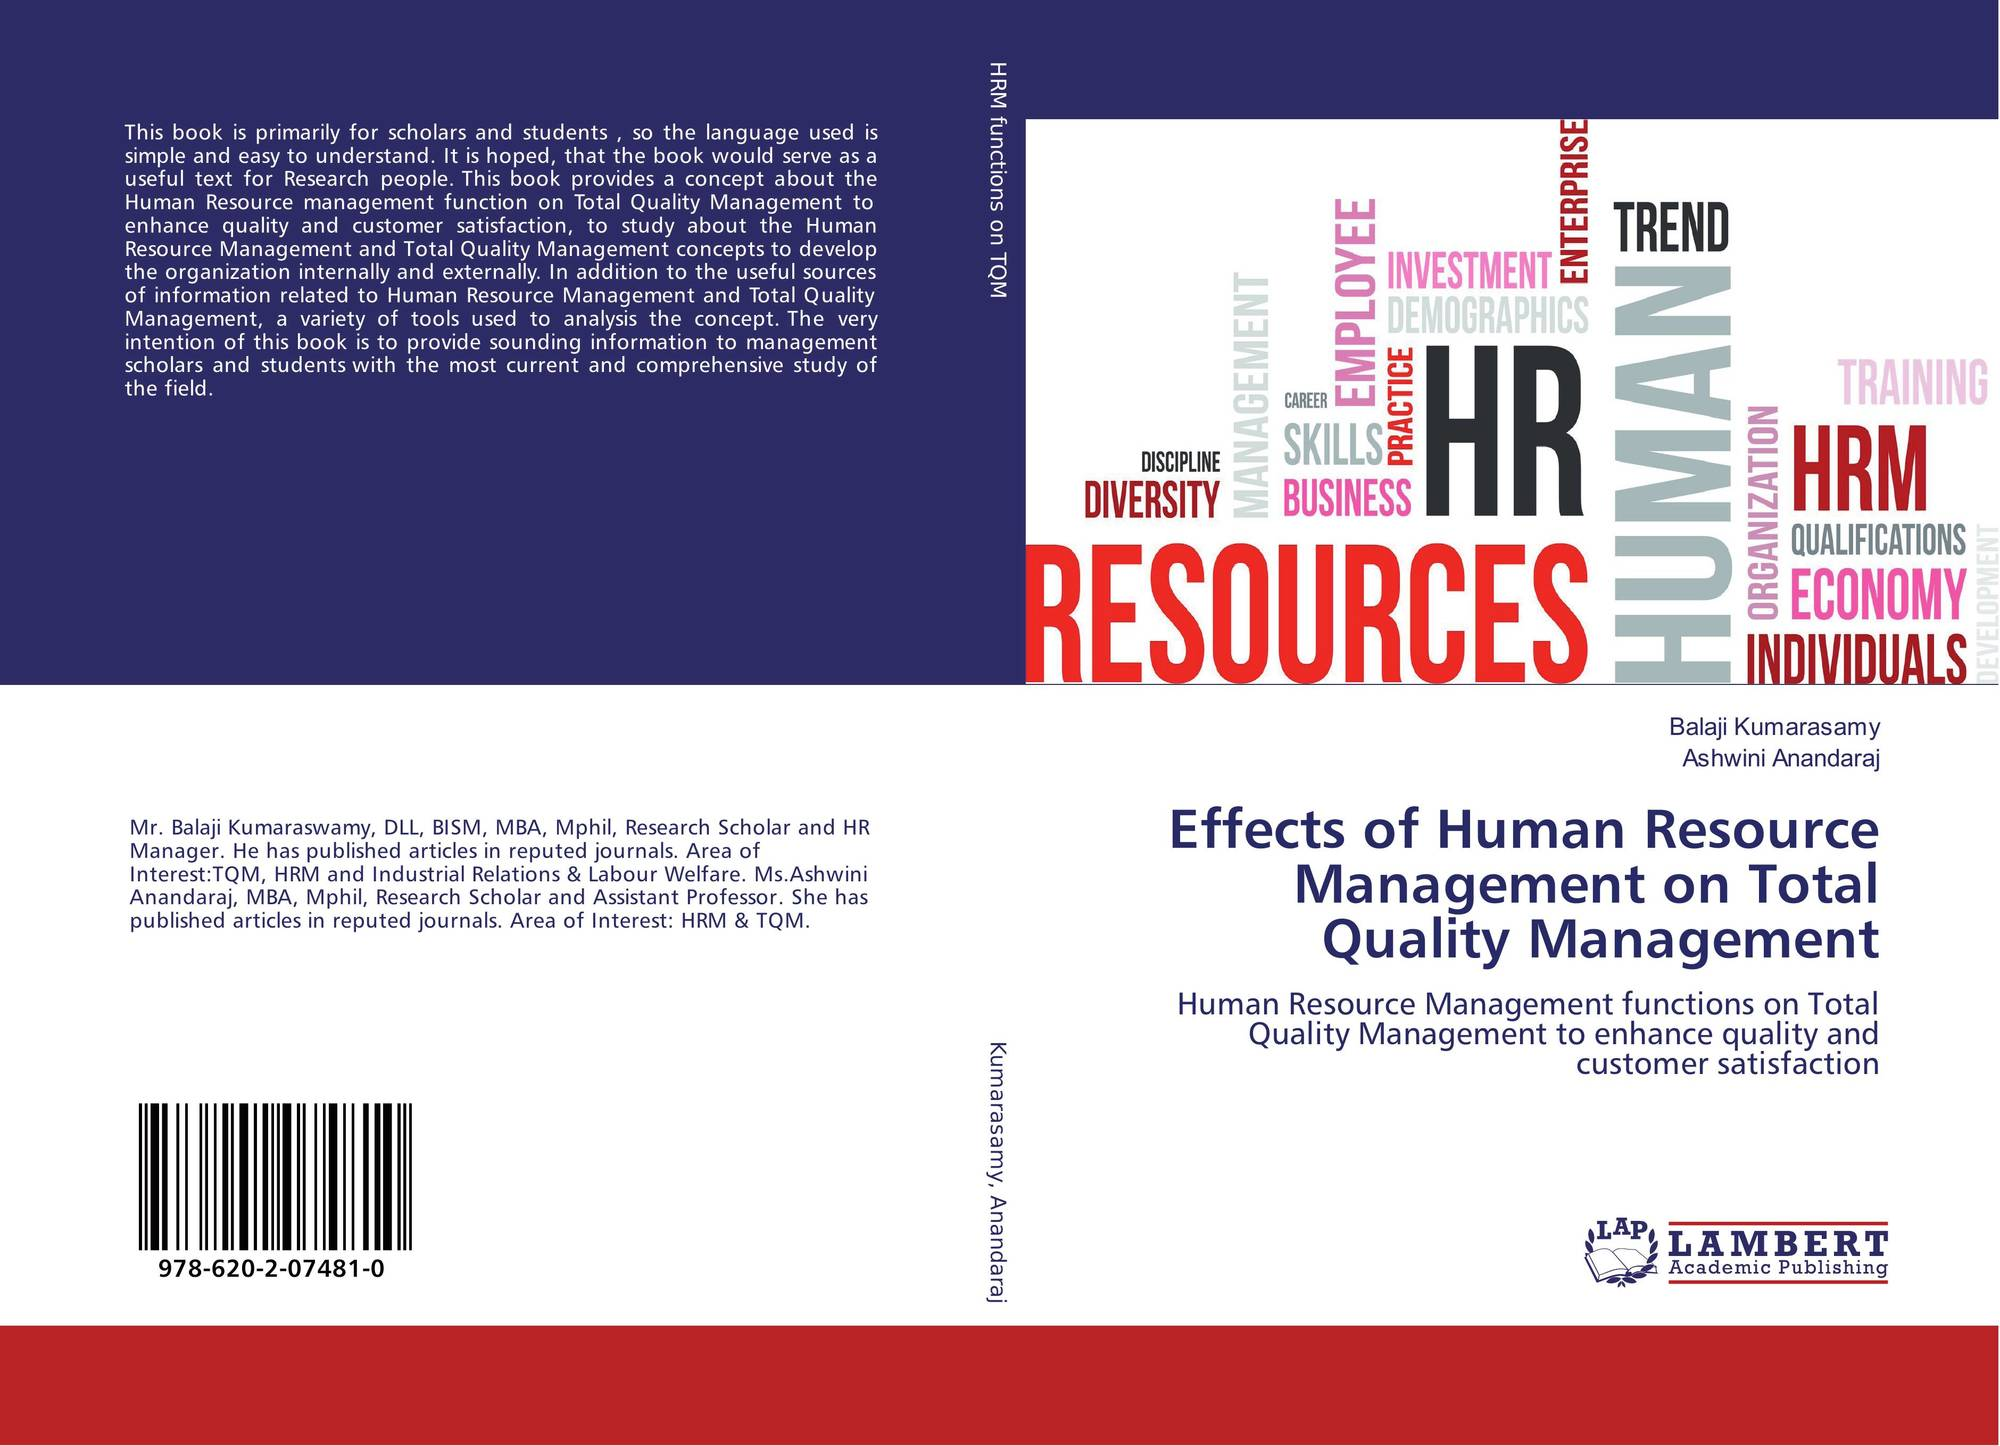 hr policies of ibm by bal Hr policies provide written guidance for employees and managers on how to handle a range of employment issues they play an important role in practically and effectively implementing an organisation's hr strategy they also provide consistency and transparency for employees and managers, helping.